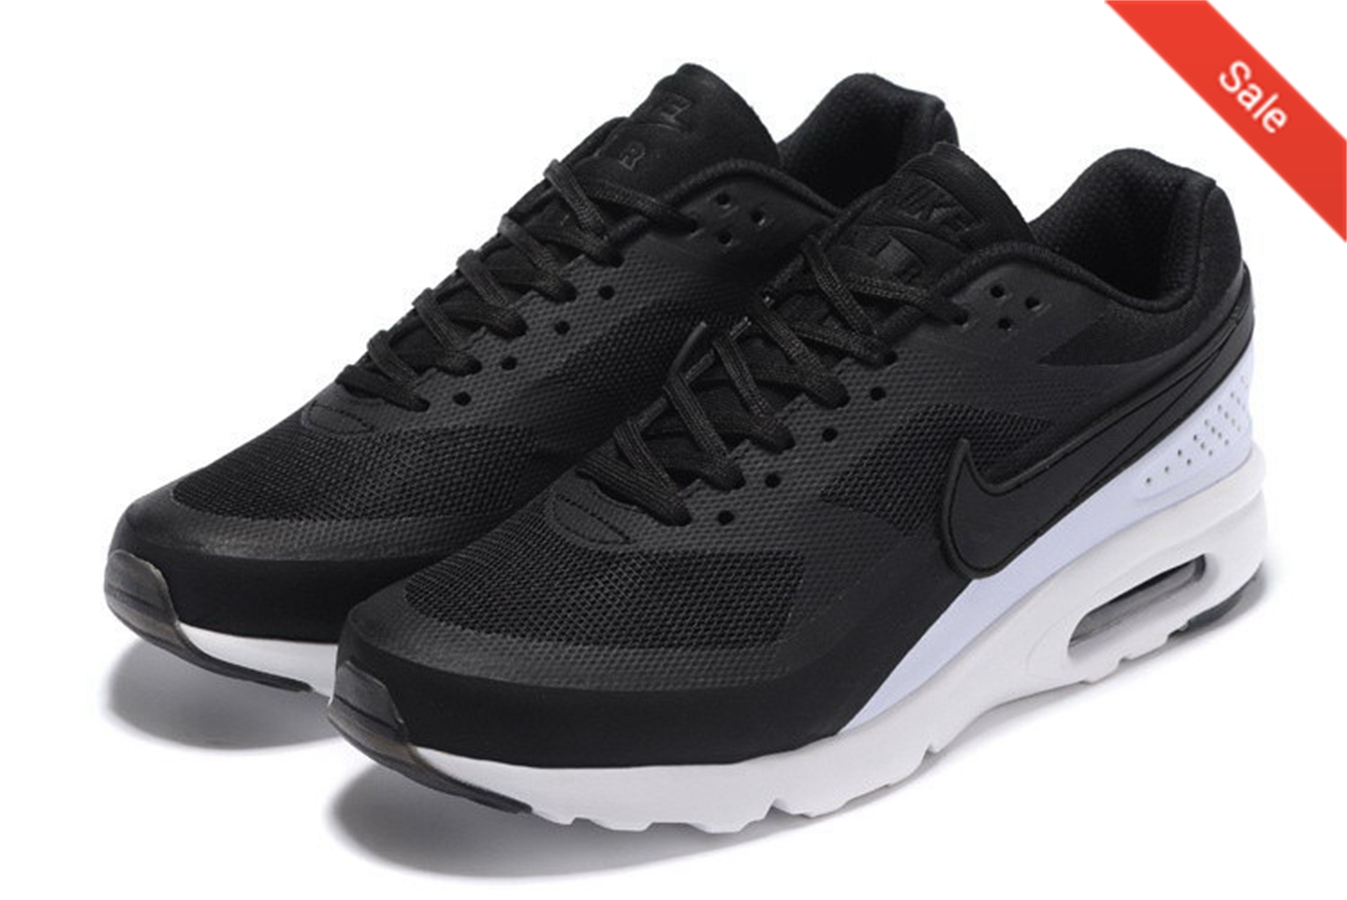 new product 58b9a 92ac5 air max 2017 homme classic